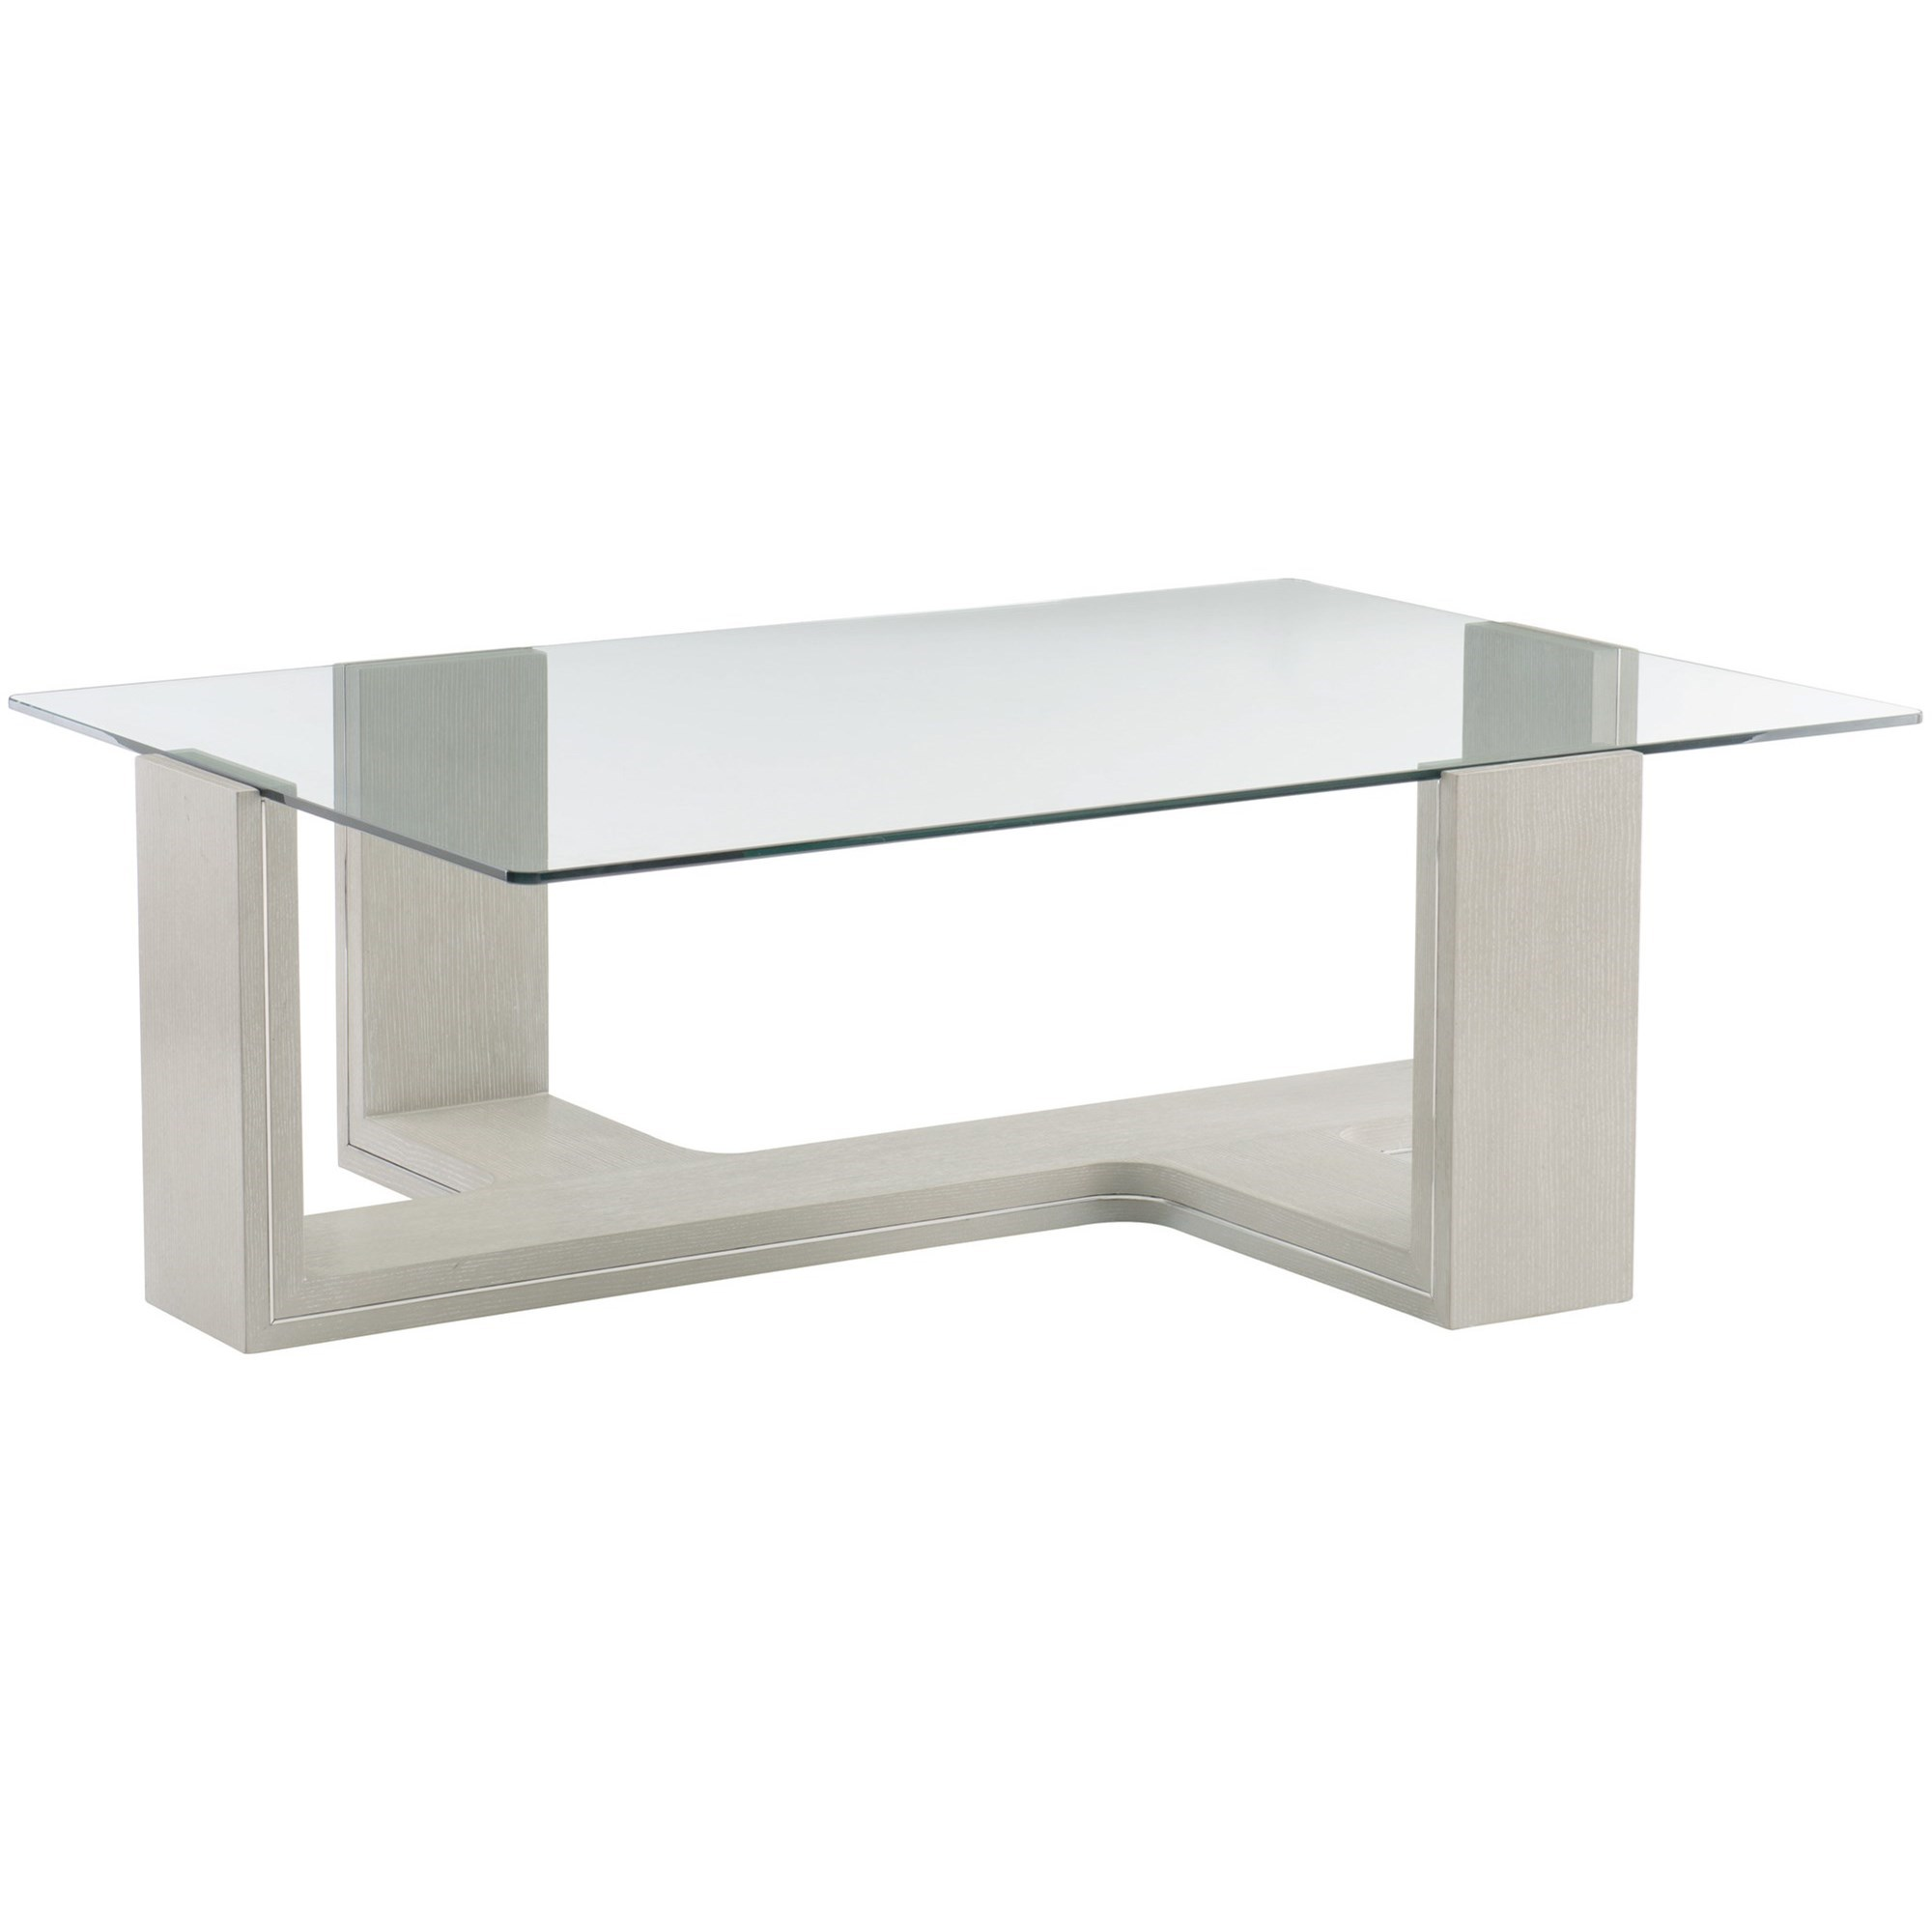 Bernhardt Vesper 428 021 Contemporary Cocktail Table With